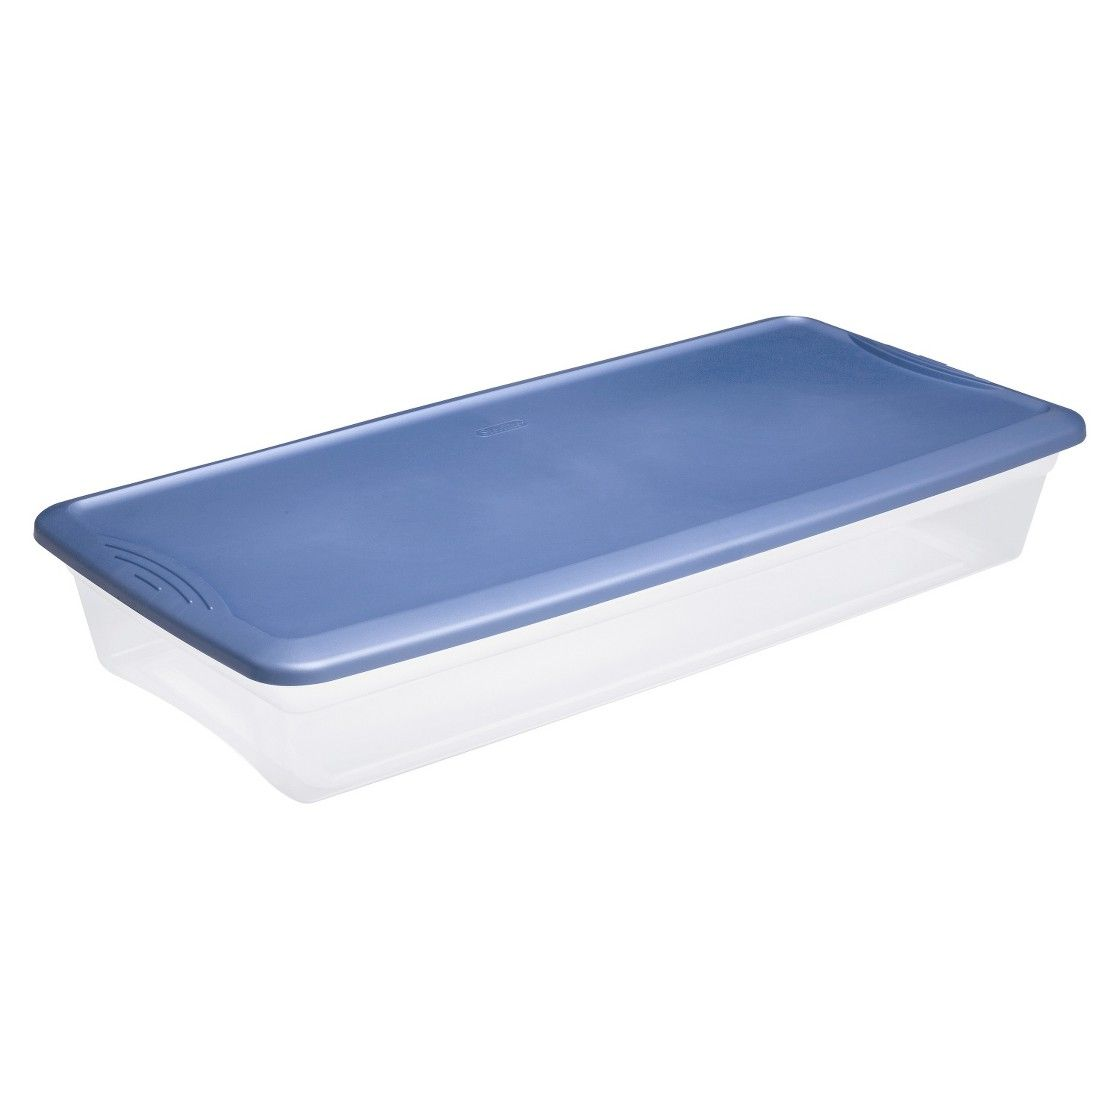 Sterilite Under Bed Storage Interesting Sterilite  Clear Storage Tote  Transparent With Blue Lid 41Qt Design Ideas